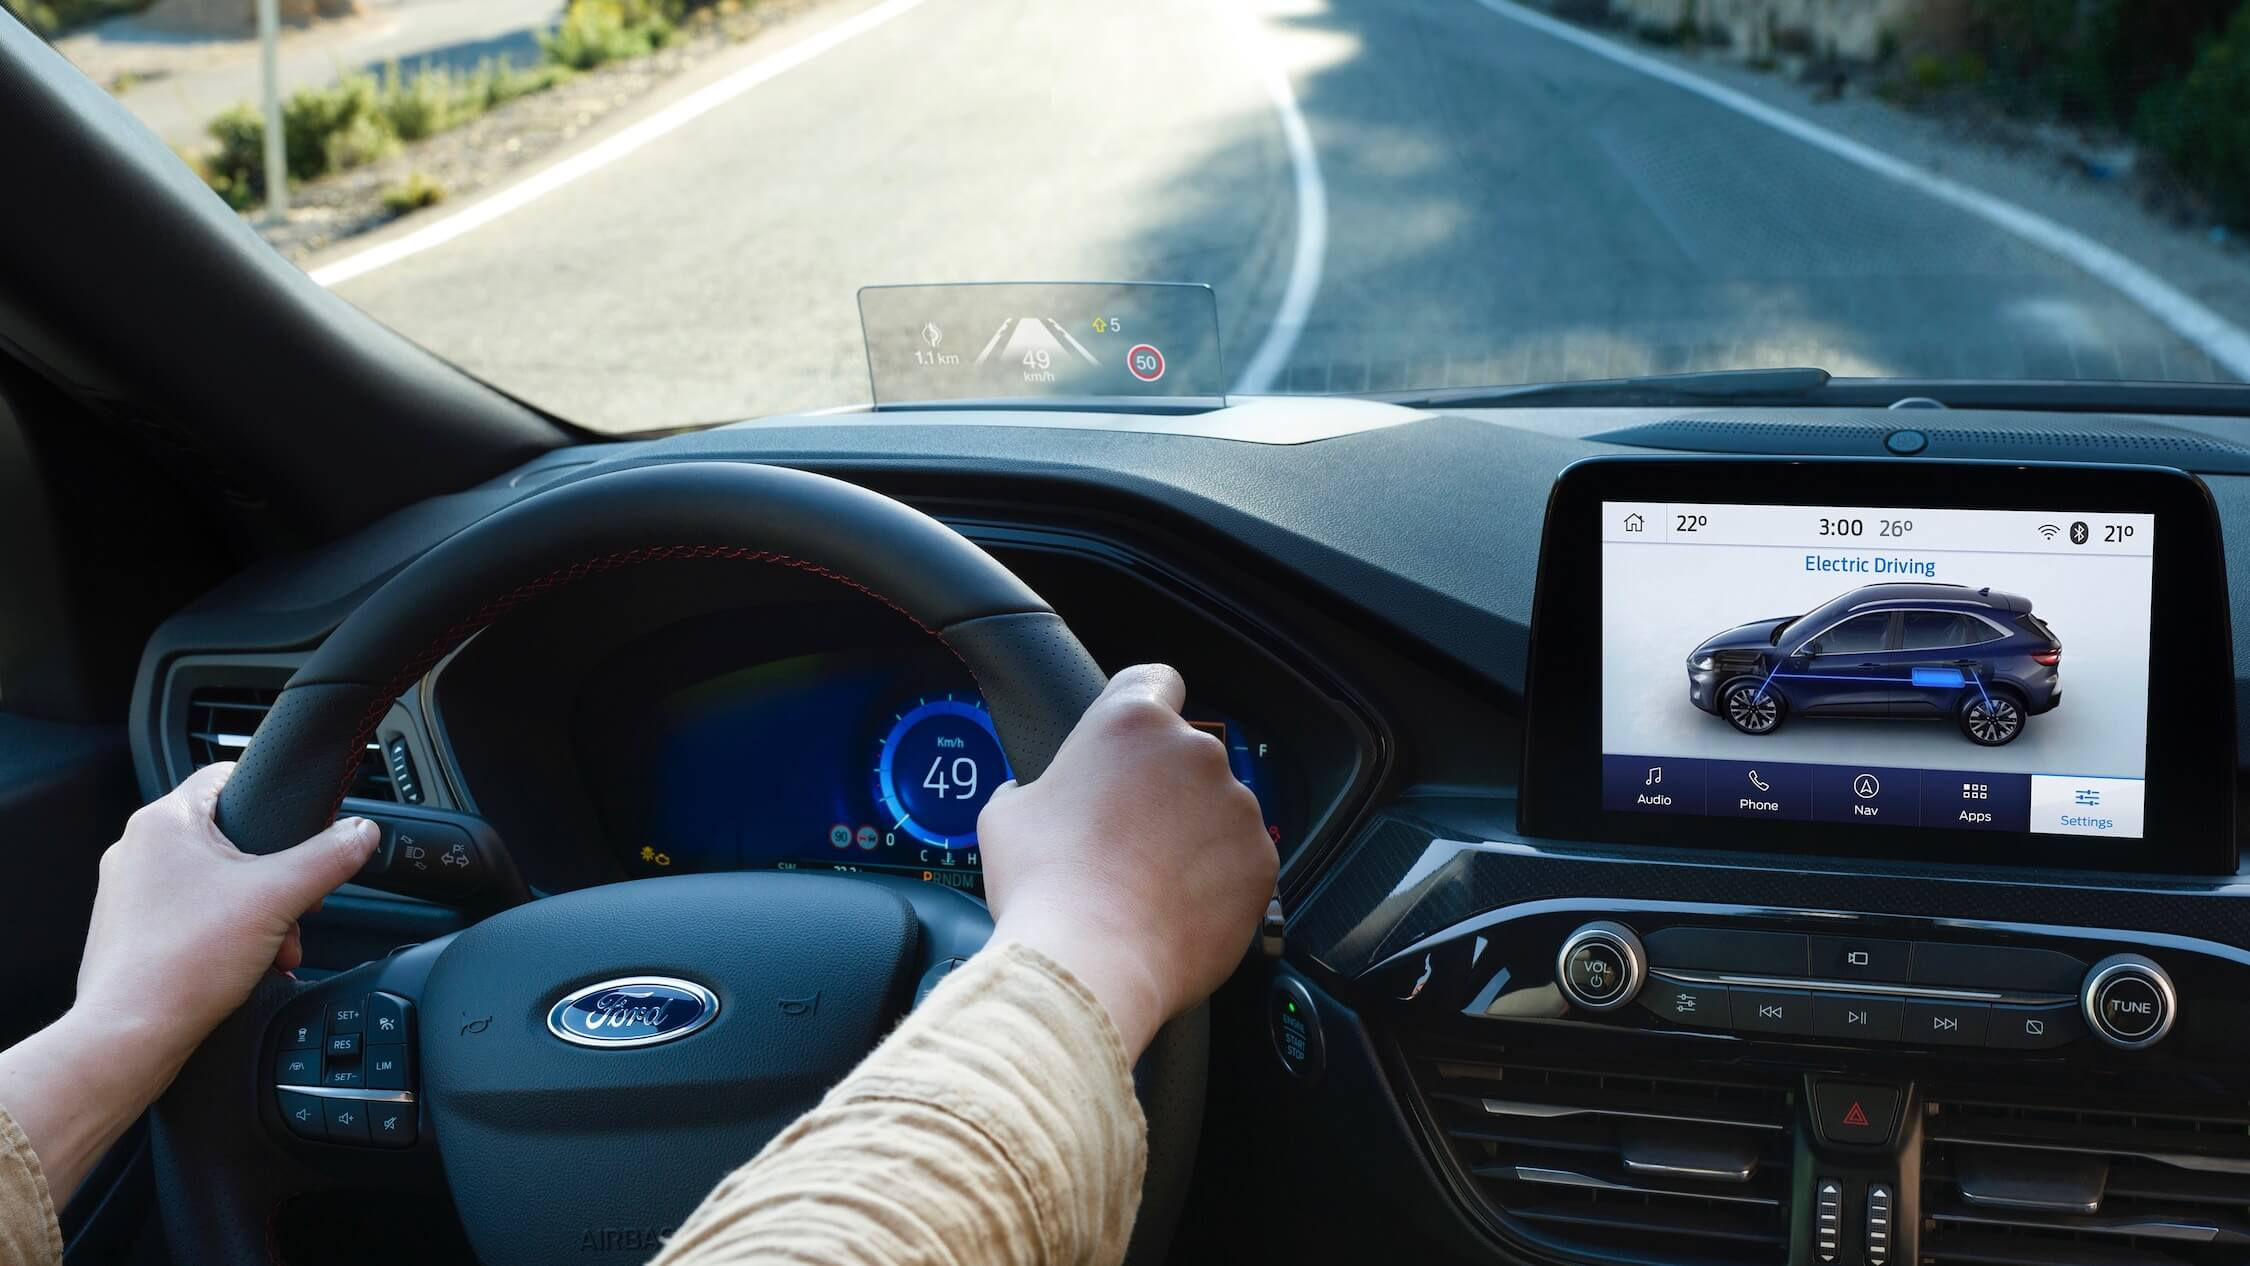 2019 Ford Kuga head-up display